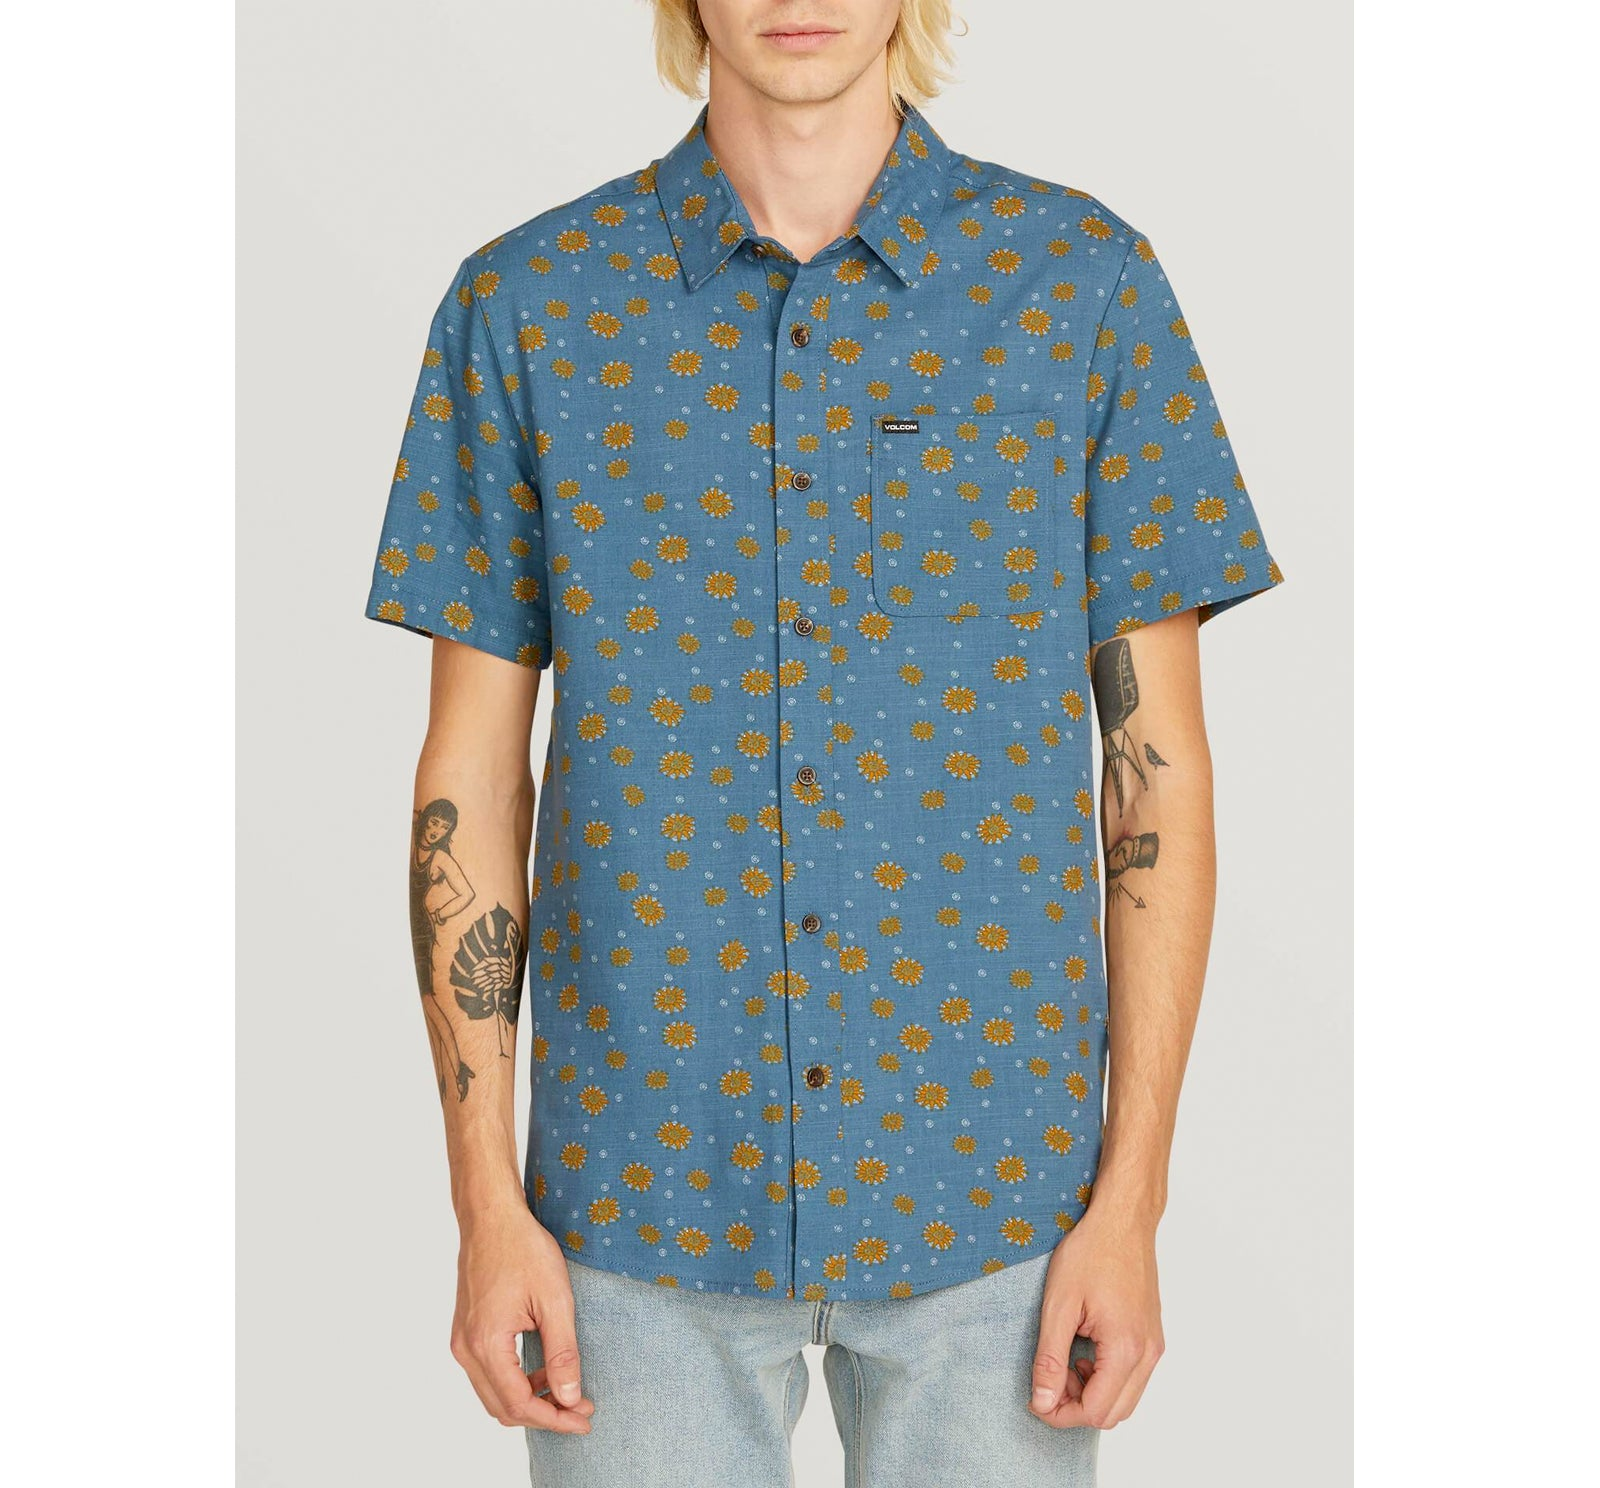 741a9ce2 Volcom Psych Dot Men's S/S Woven - Surf Station Store